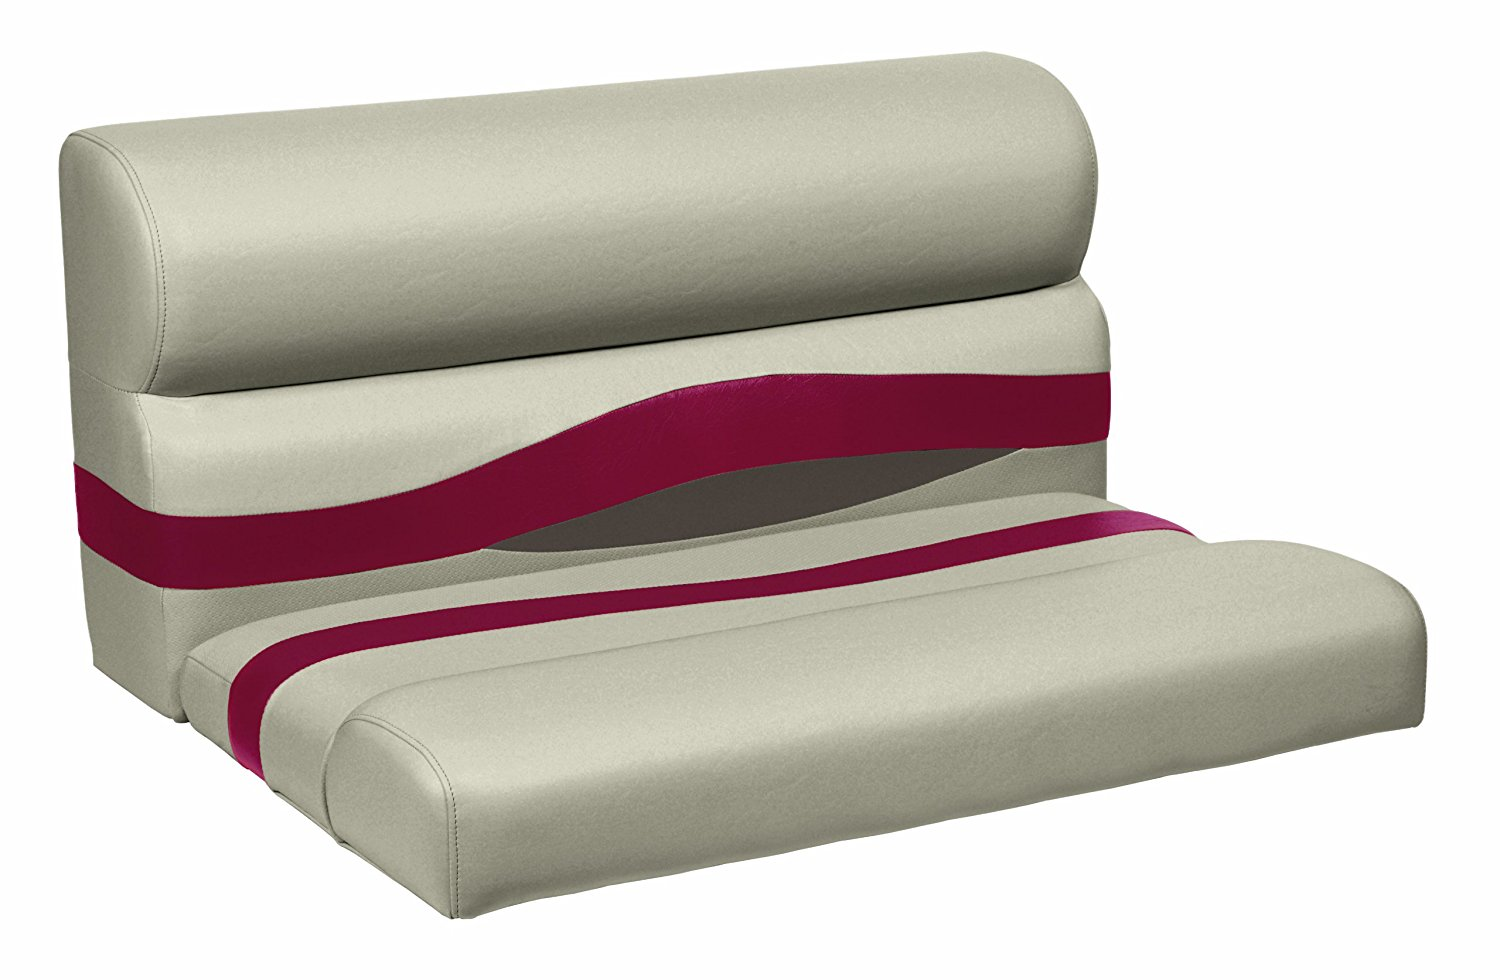 Wise Premier Series Pontoon 27-Inch Bench Seat, Cushions Only